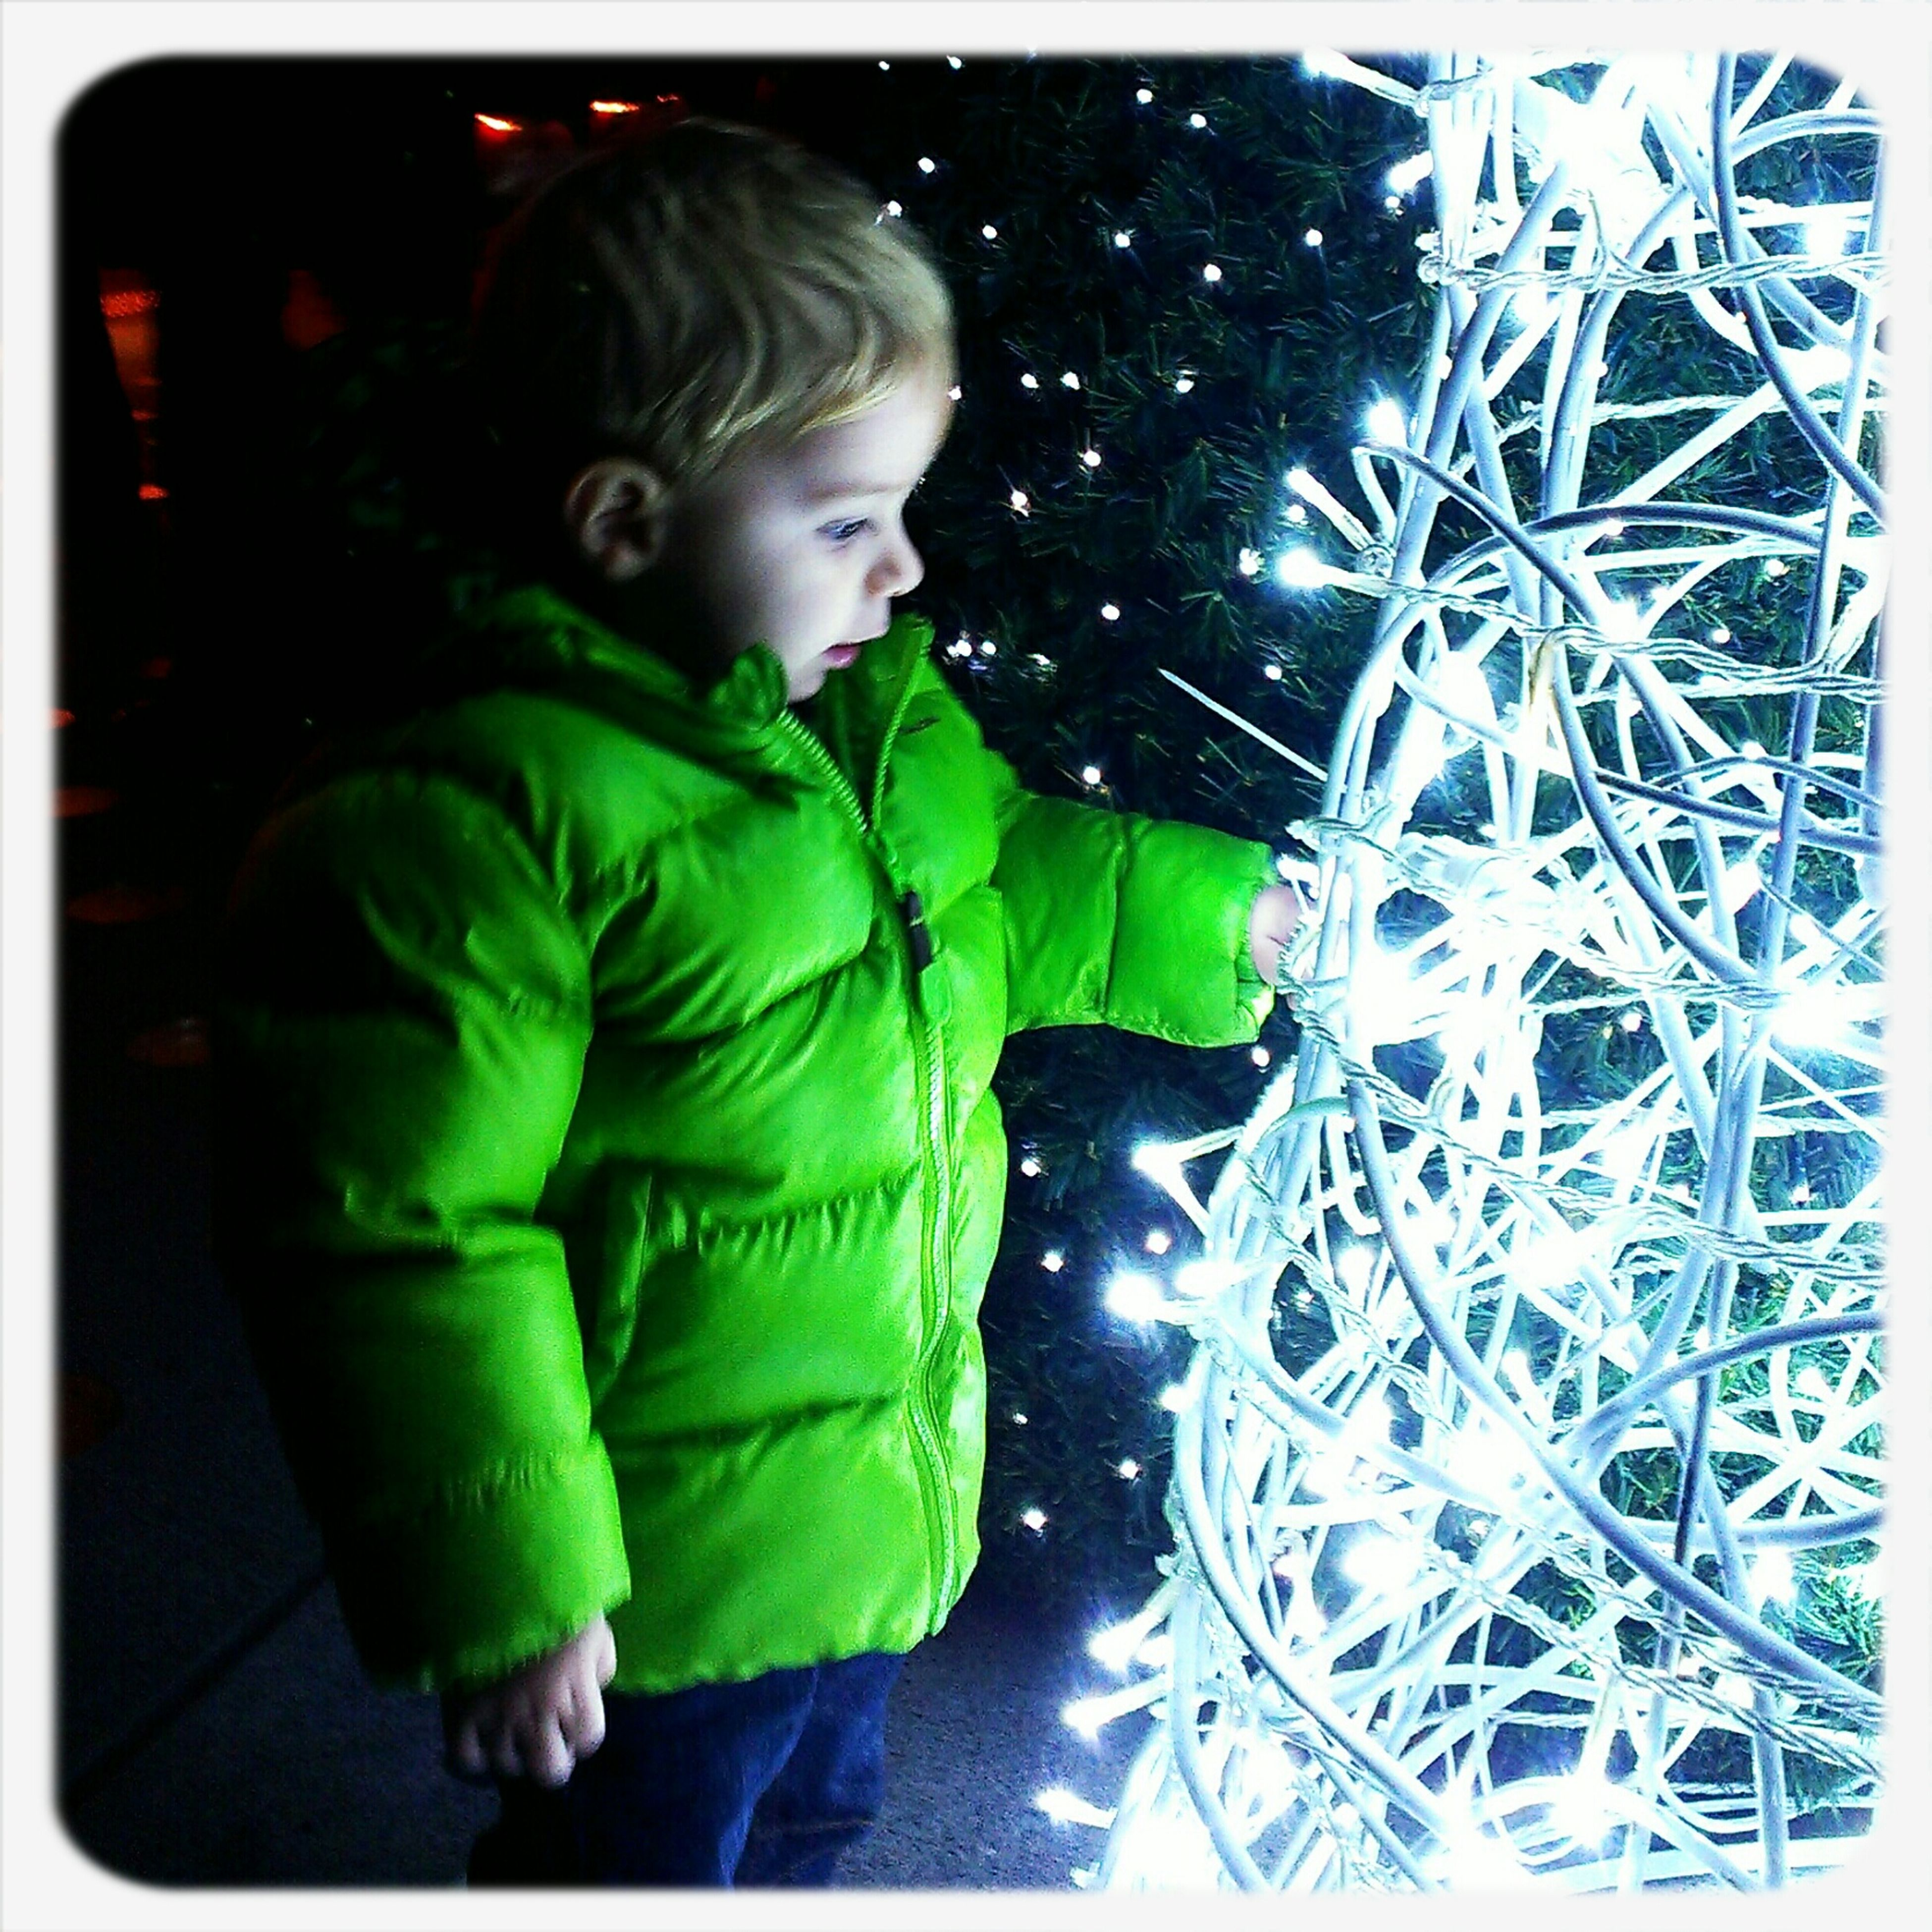 Christmas Children Nightphotography Lights